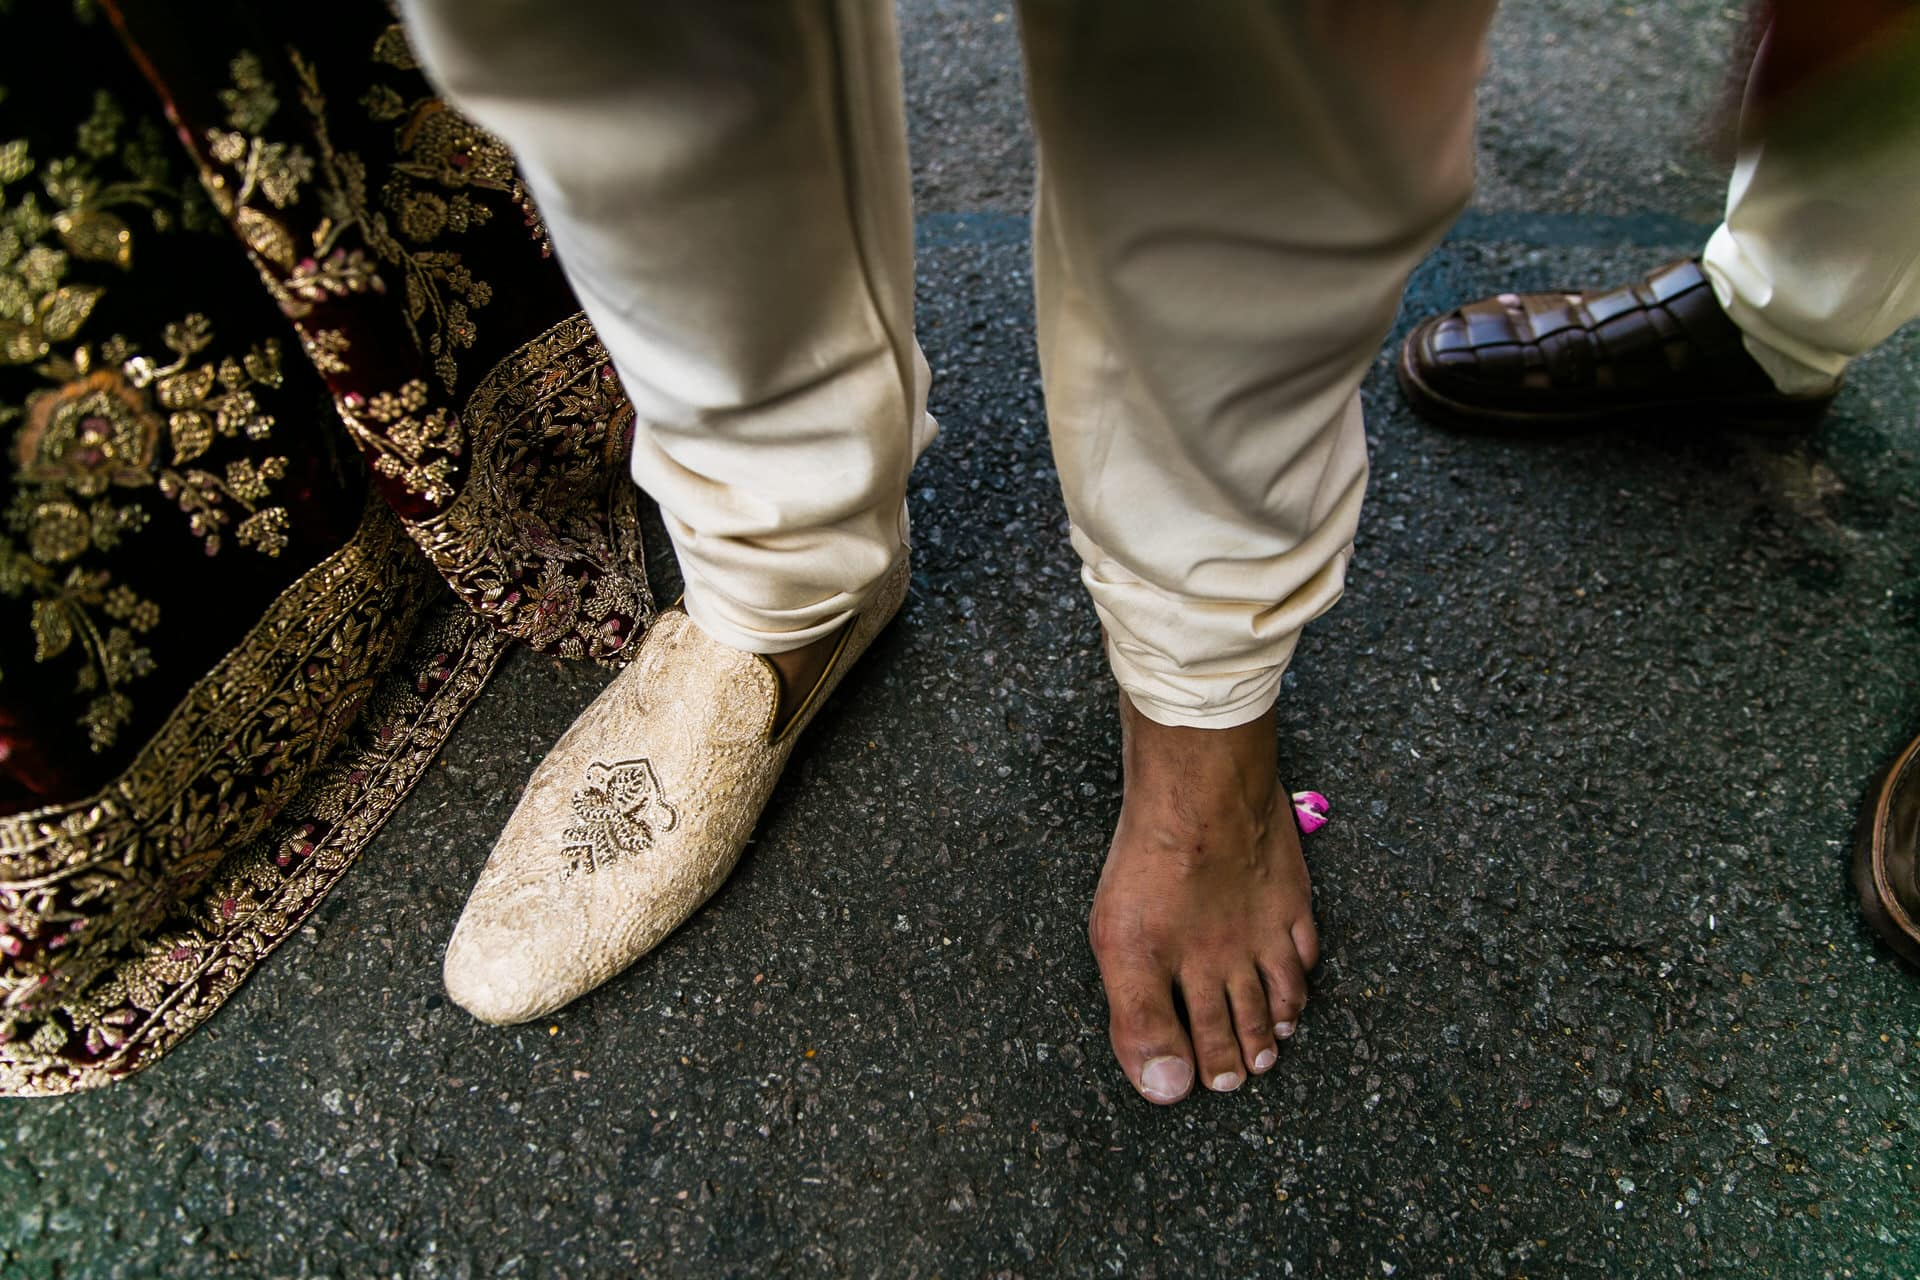 Groom with 1 shoe